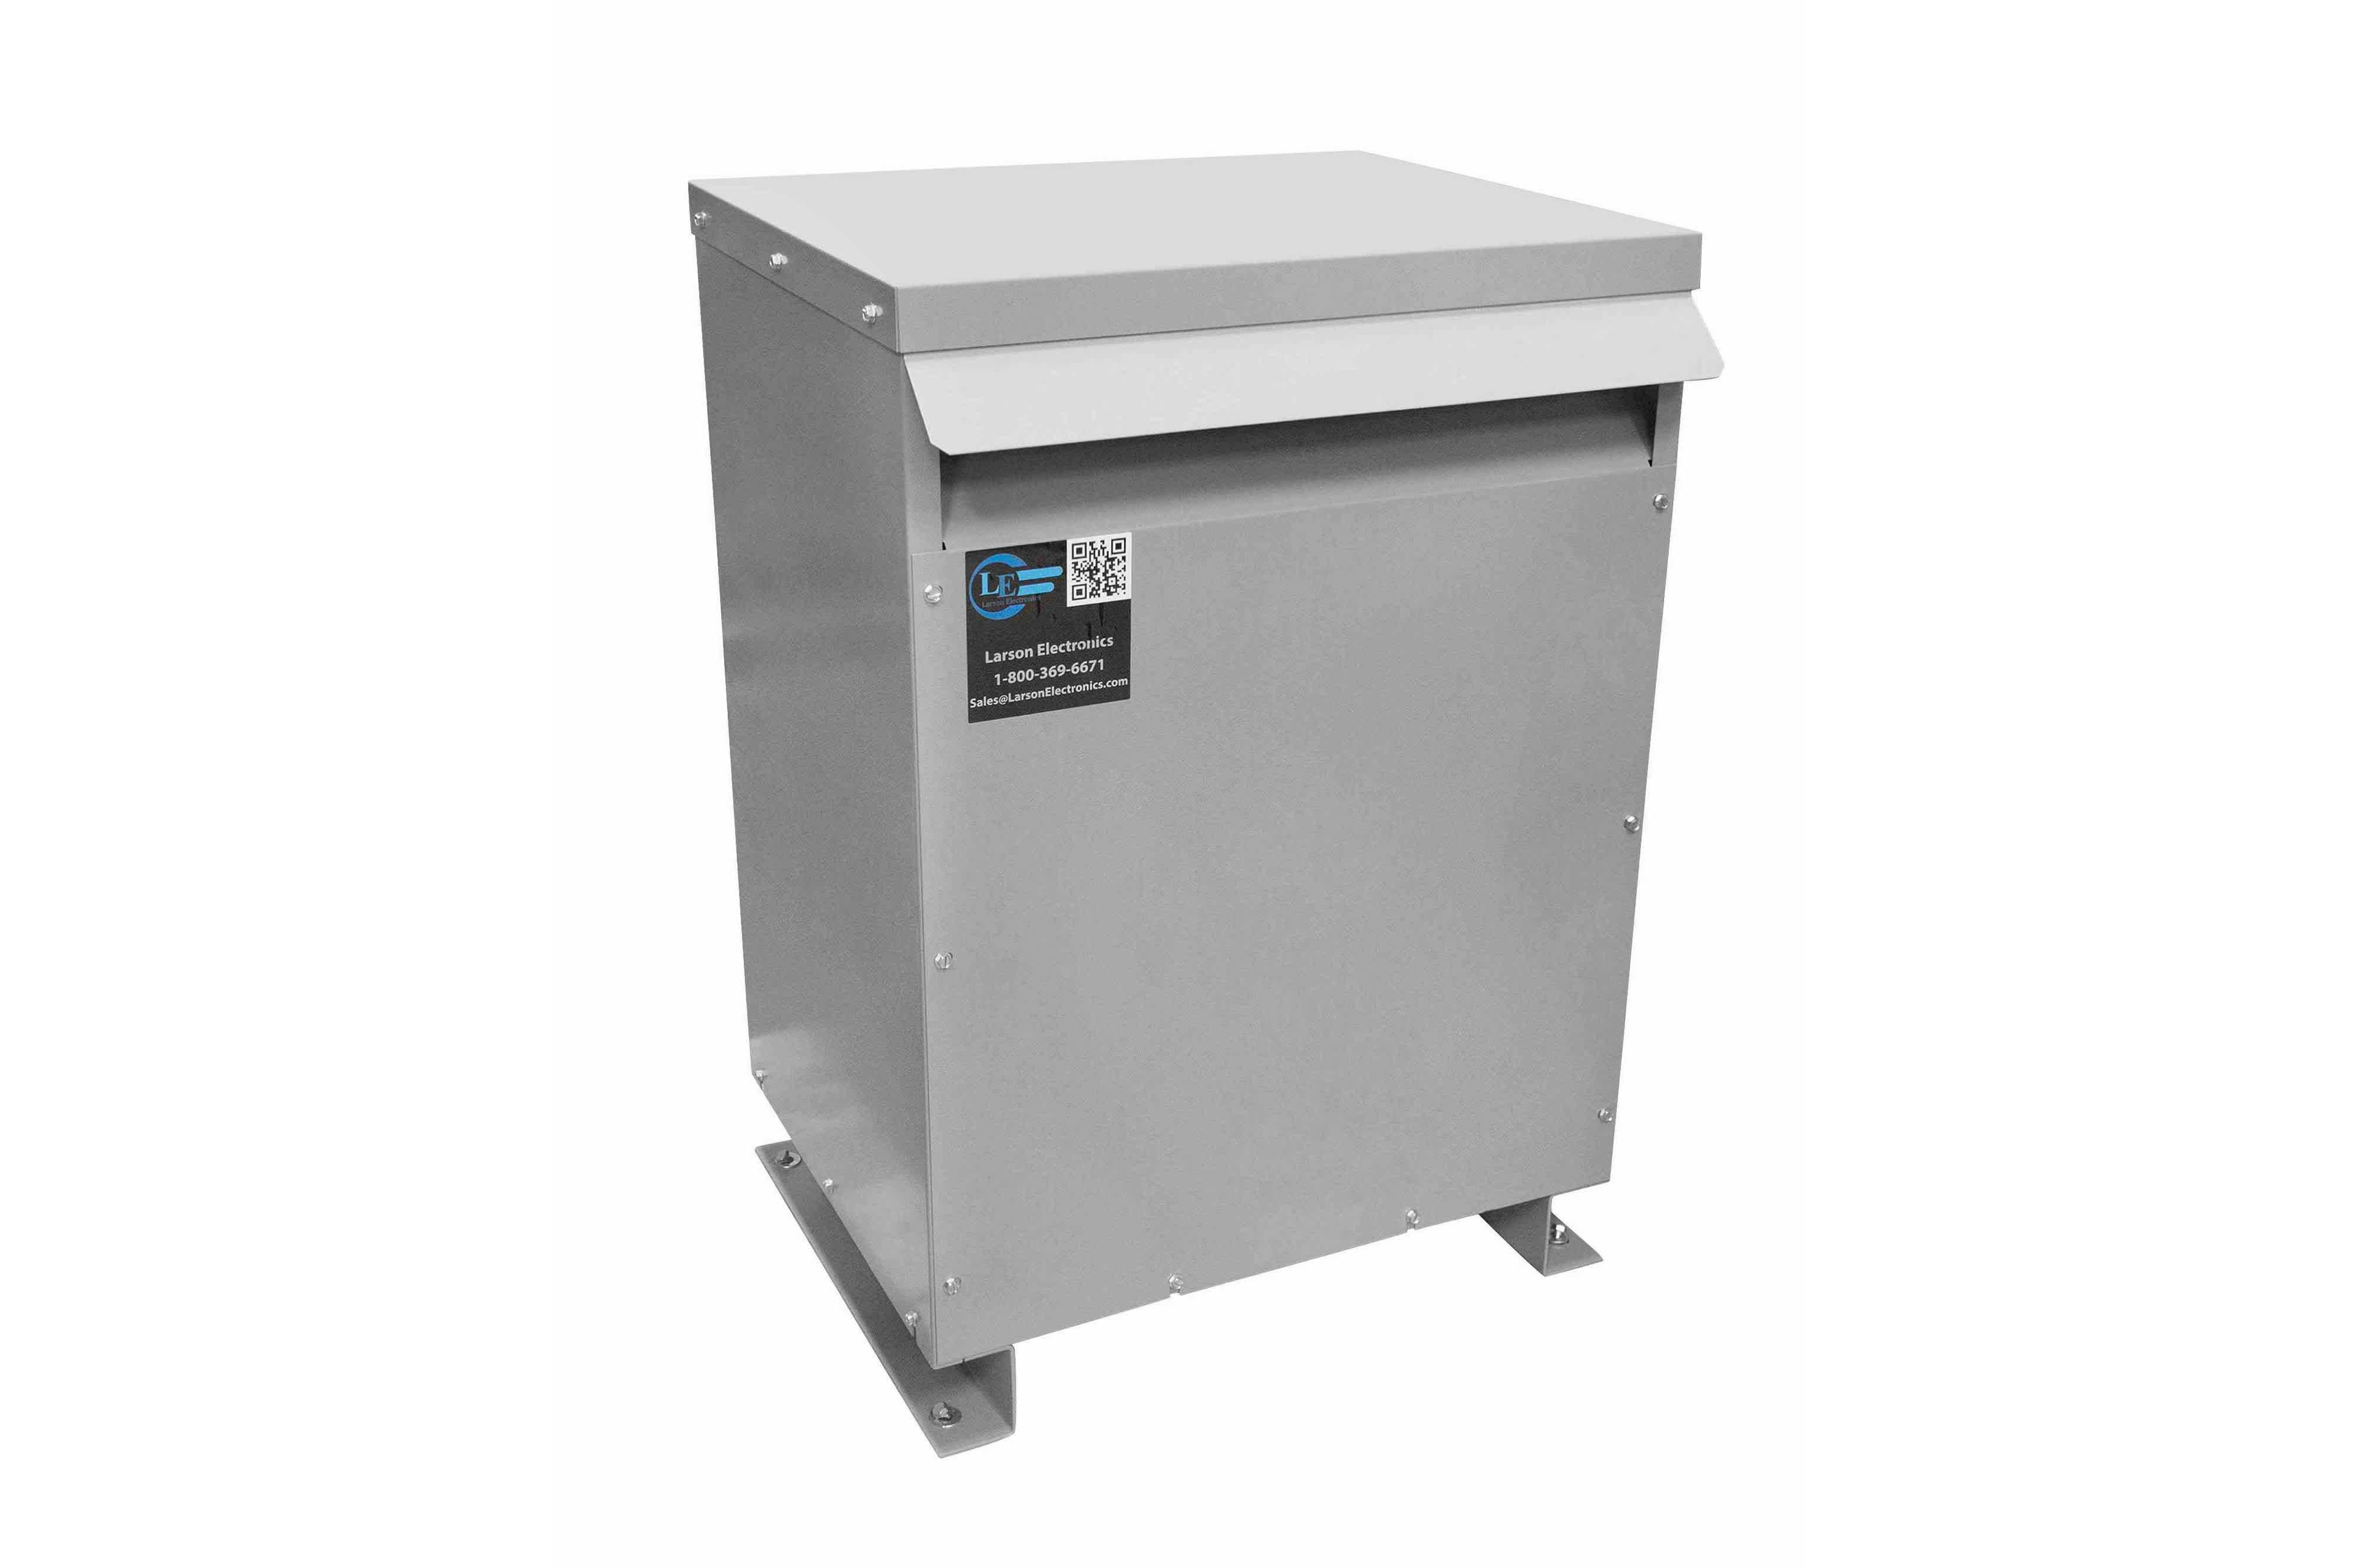 50 kVA 3PH Isolation Transformer, 575V Delta Primary, 400V Delta Secondary, N3R, Ventilated, 60 Hz